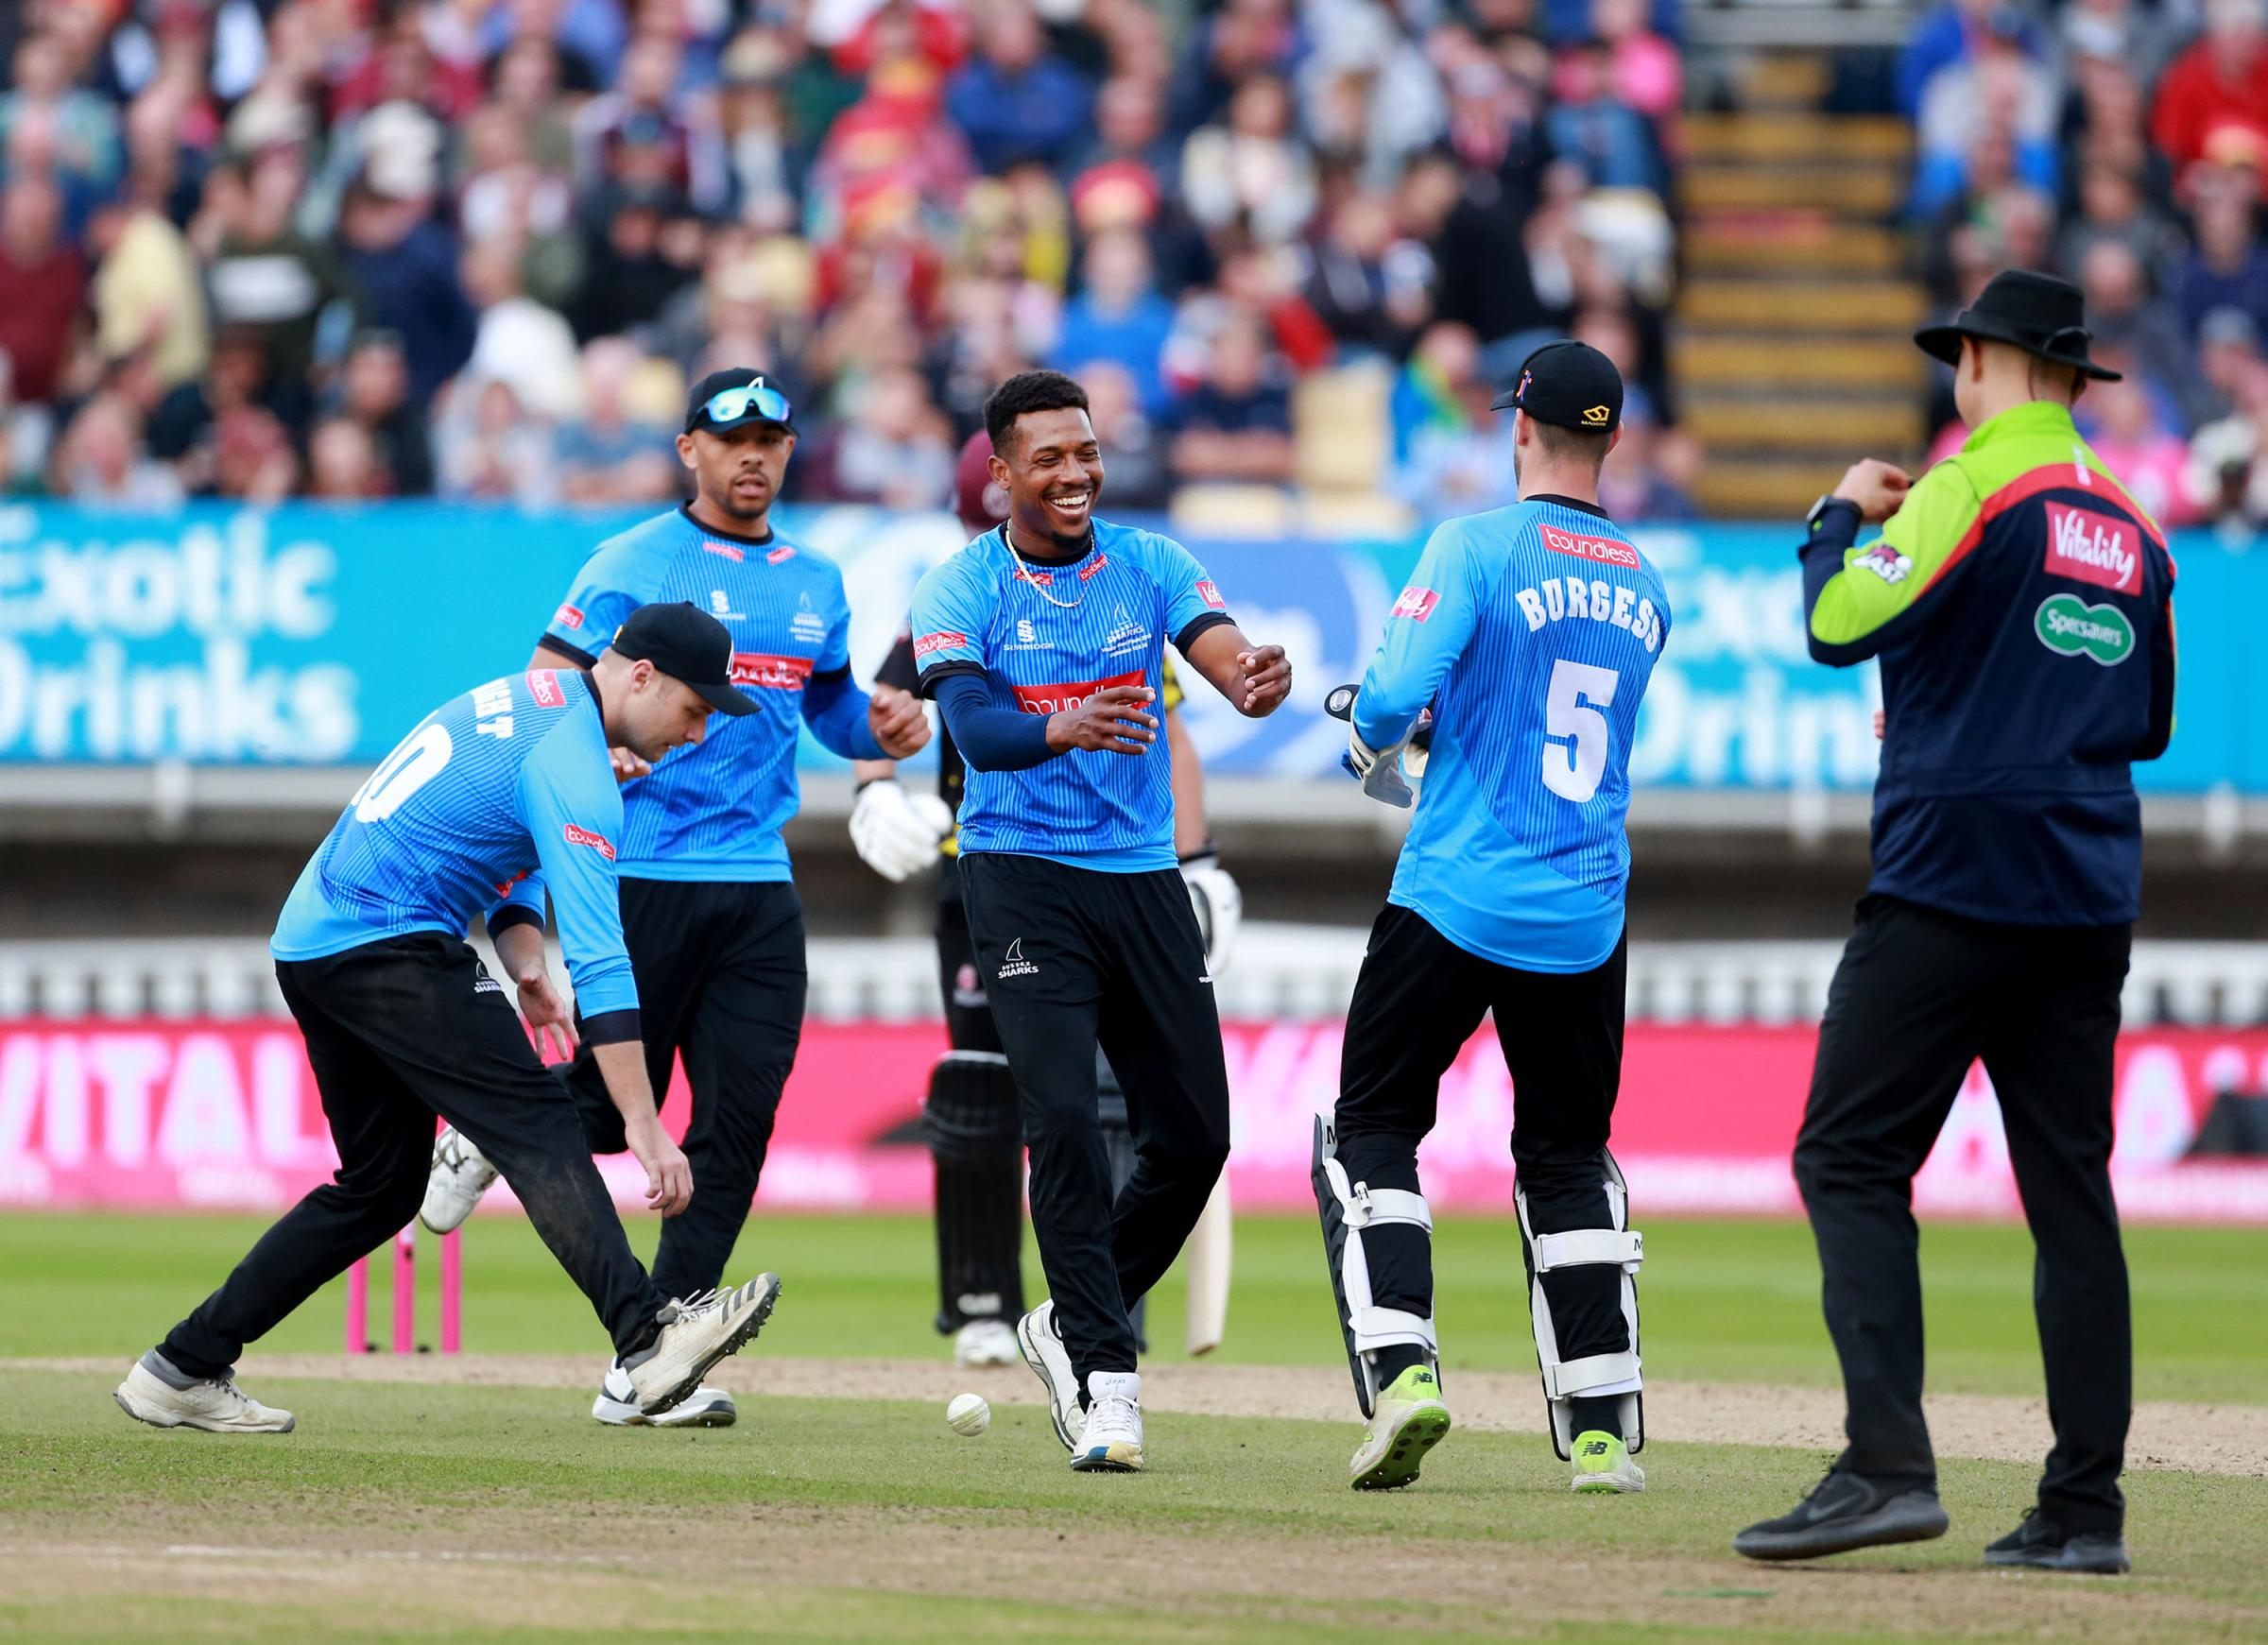 Chris Jordan and Sussex Sharks know their 2019 schedule in the Vitality Blast